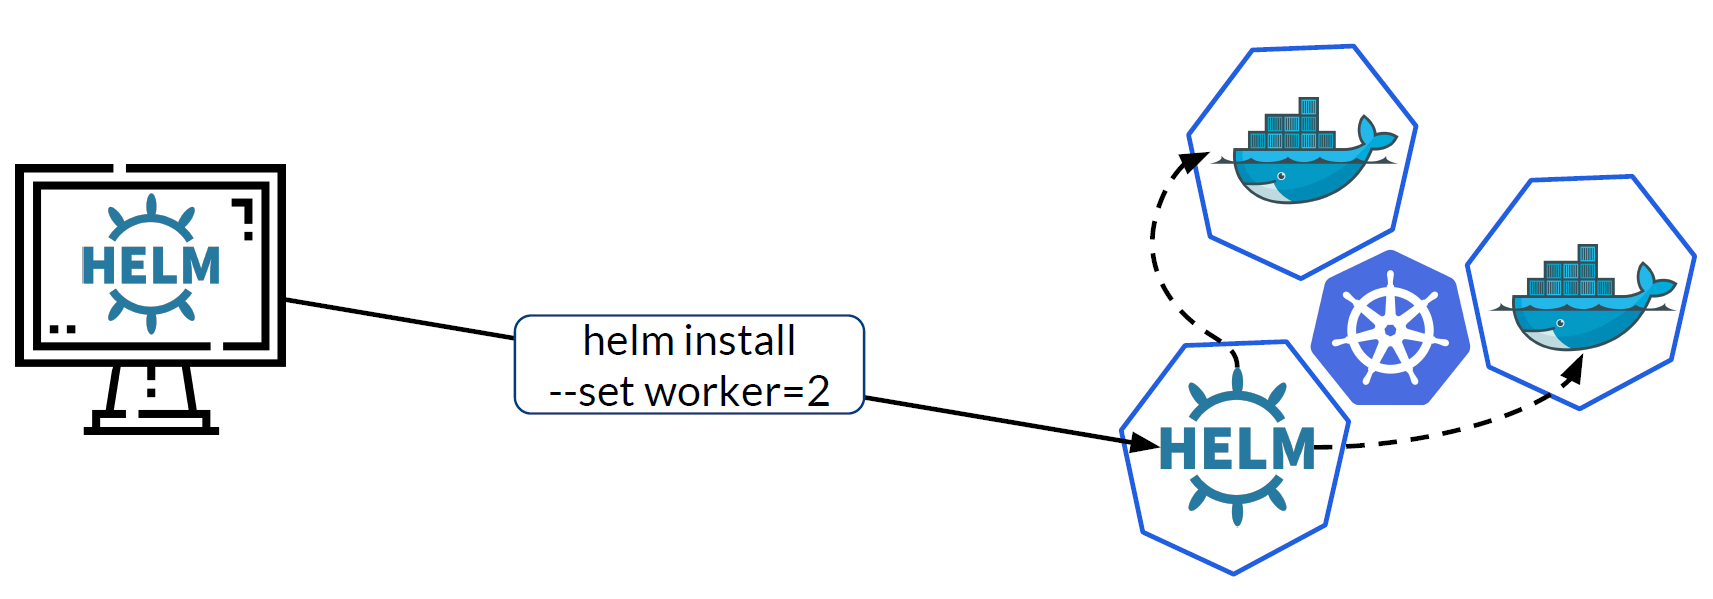 Helm can be used to spawn workers in the Kubernetes cluster. Docker images provide the workers with the program logic.